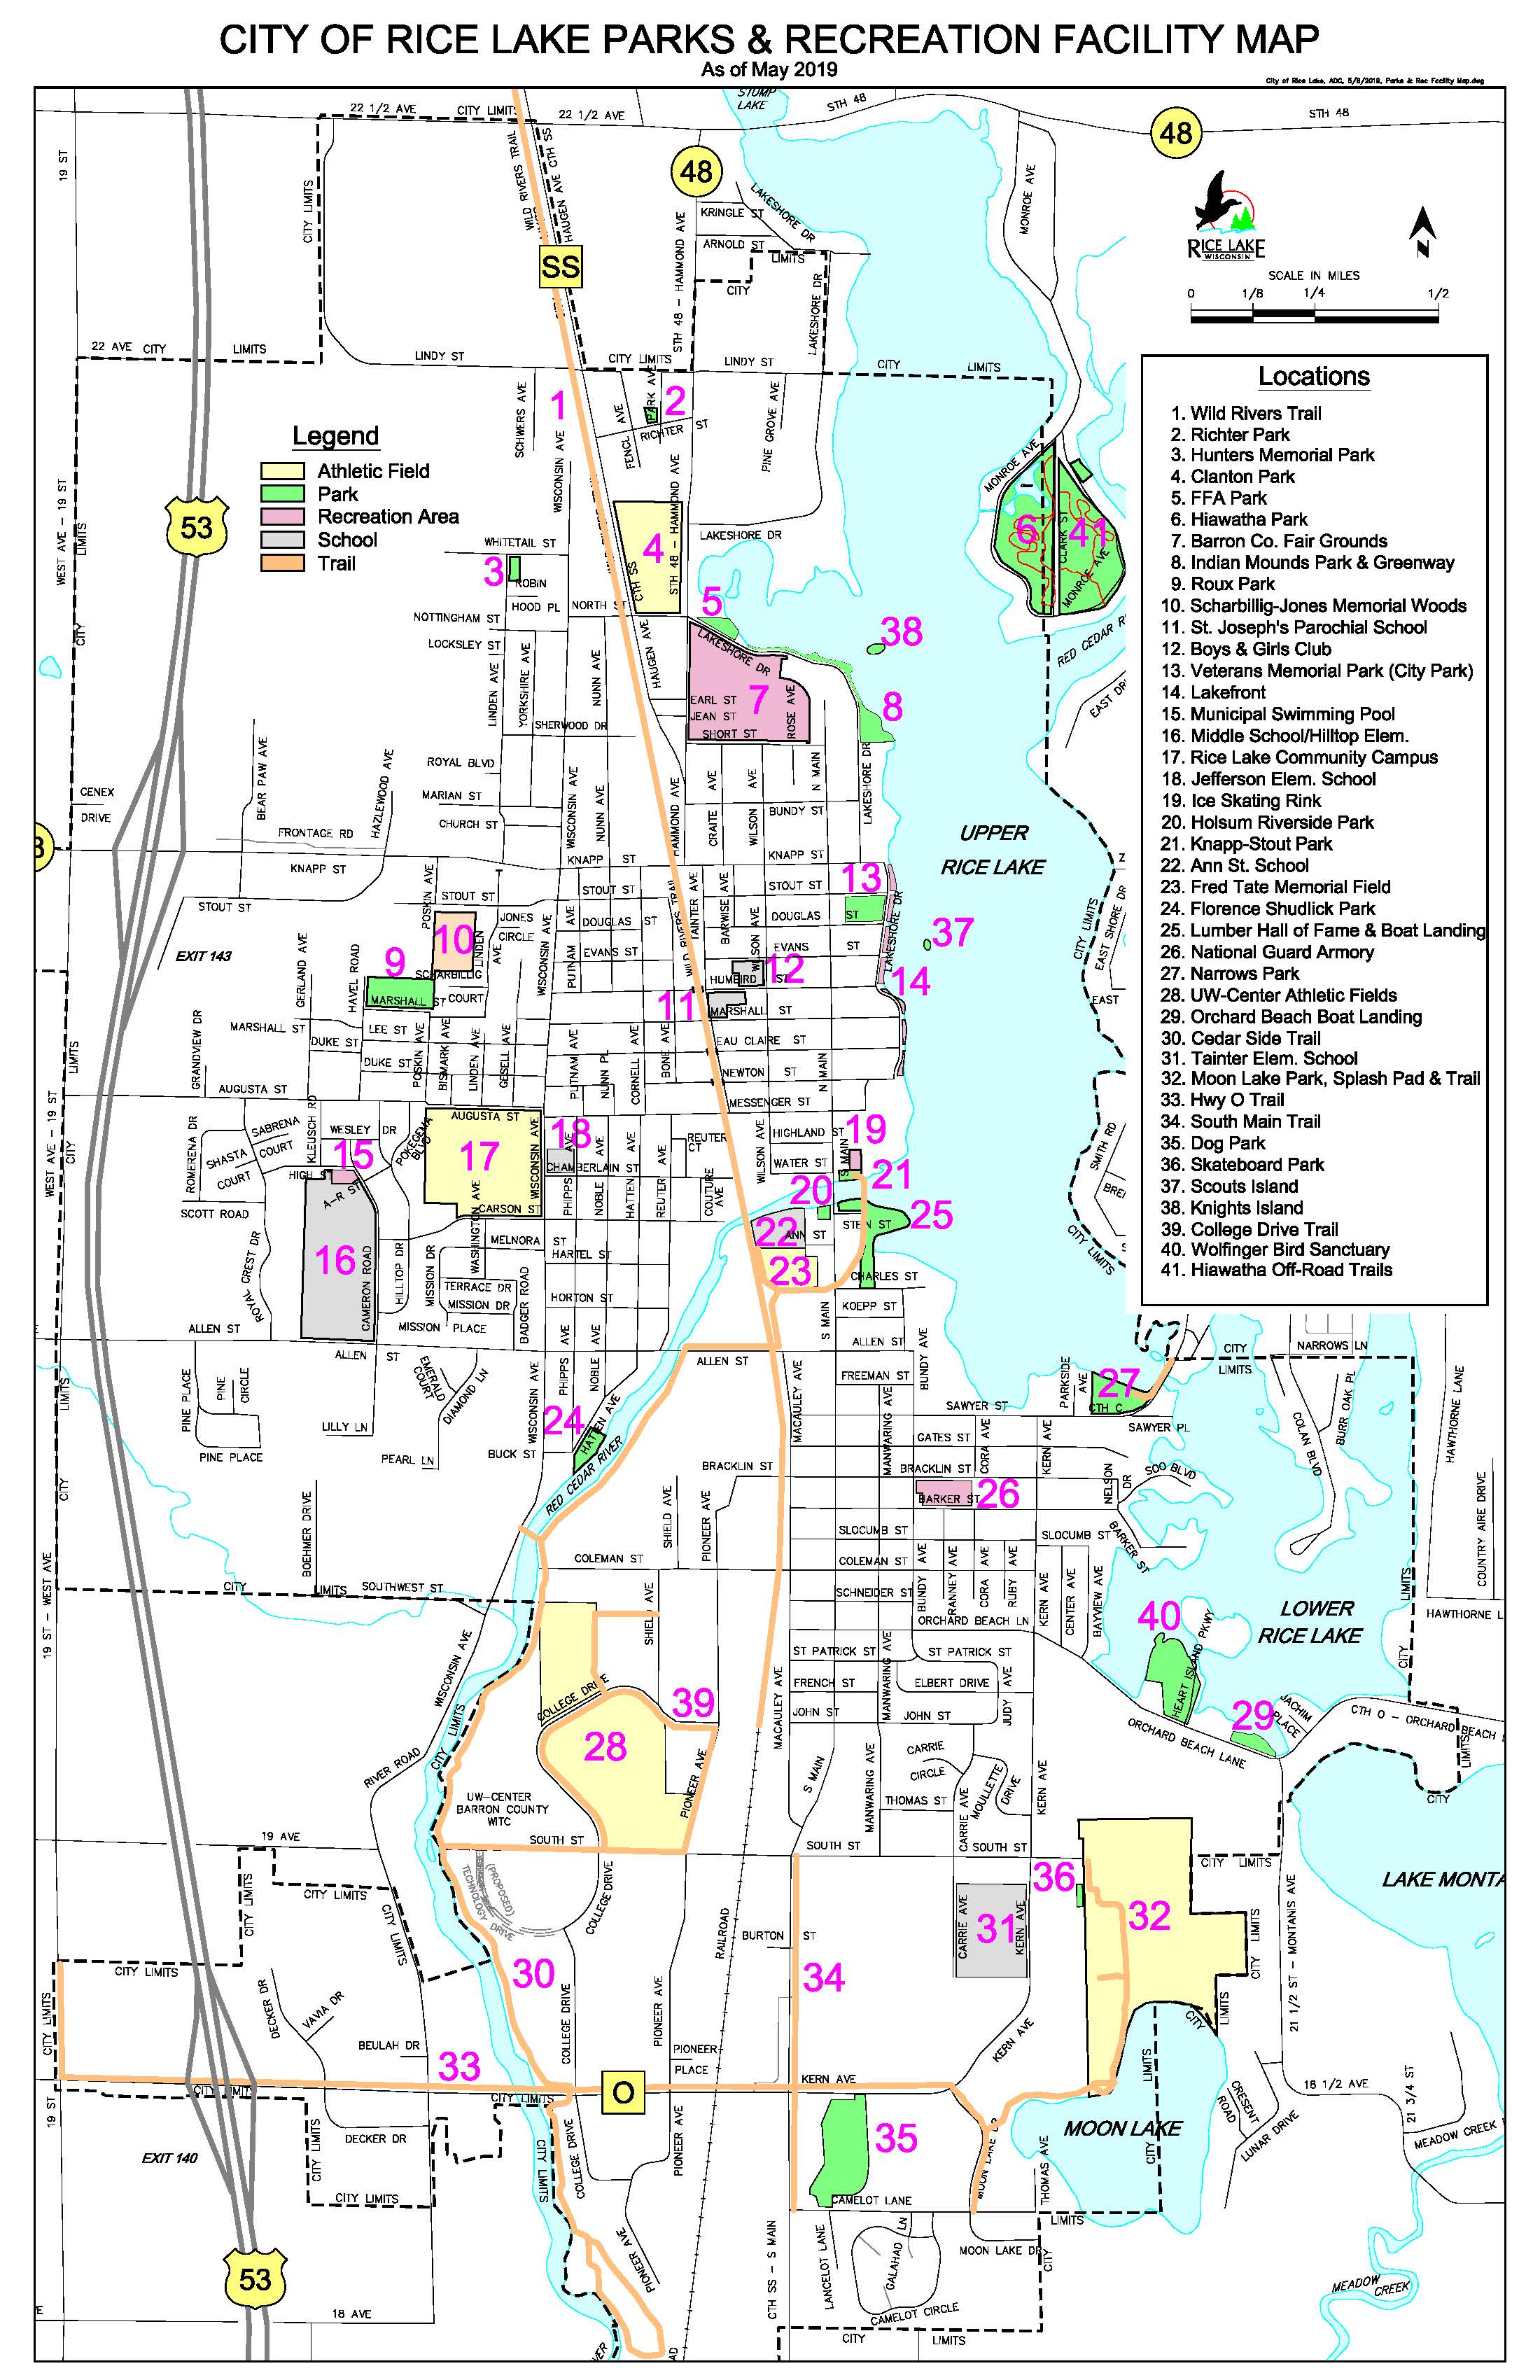 Parks Maps - CITY OF RICE LAKE